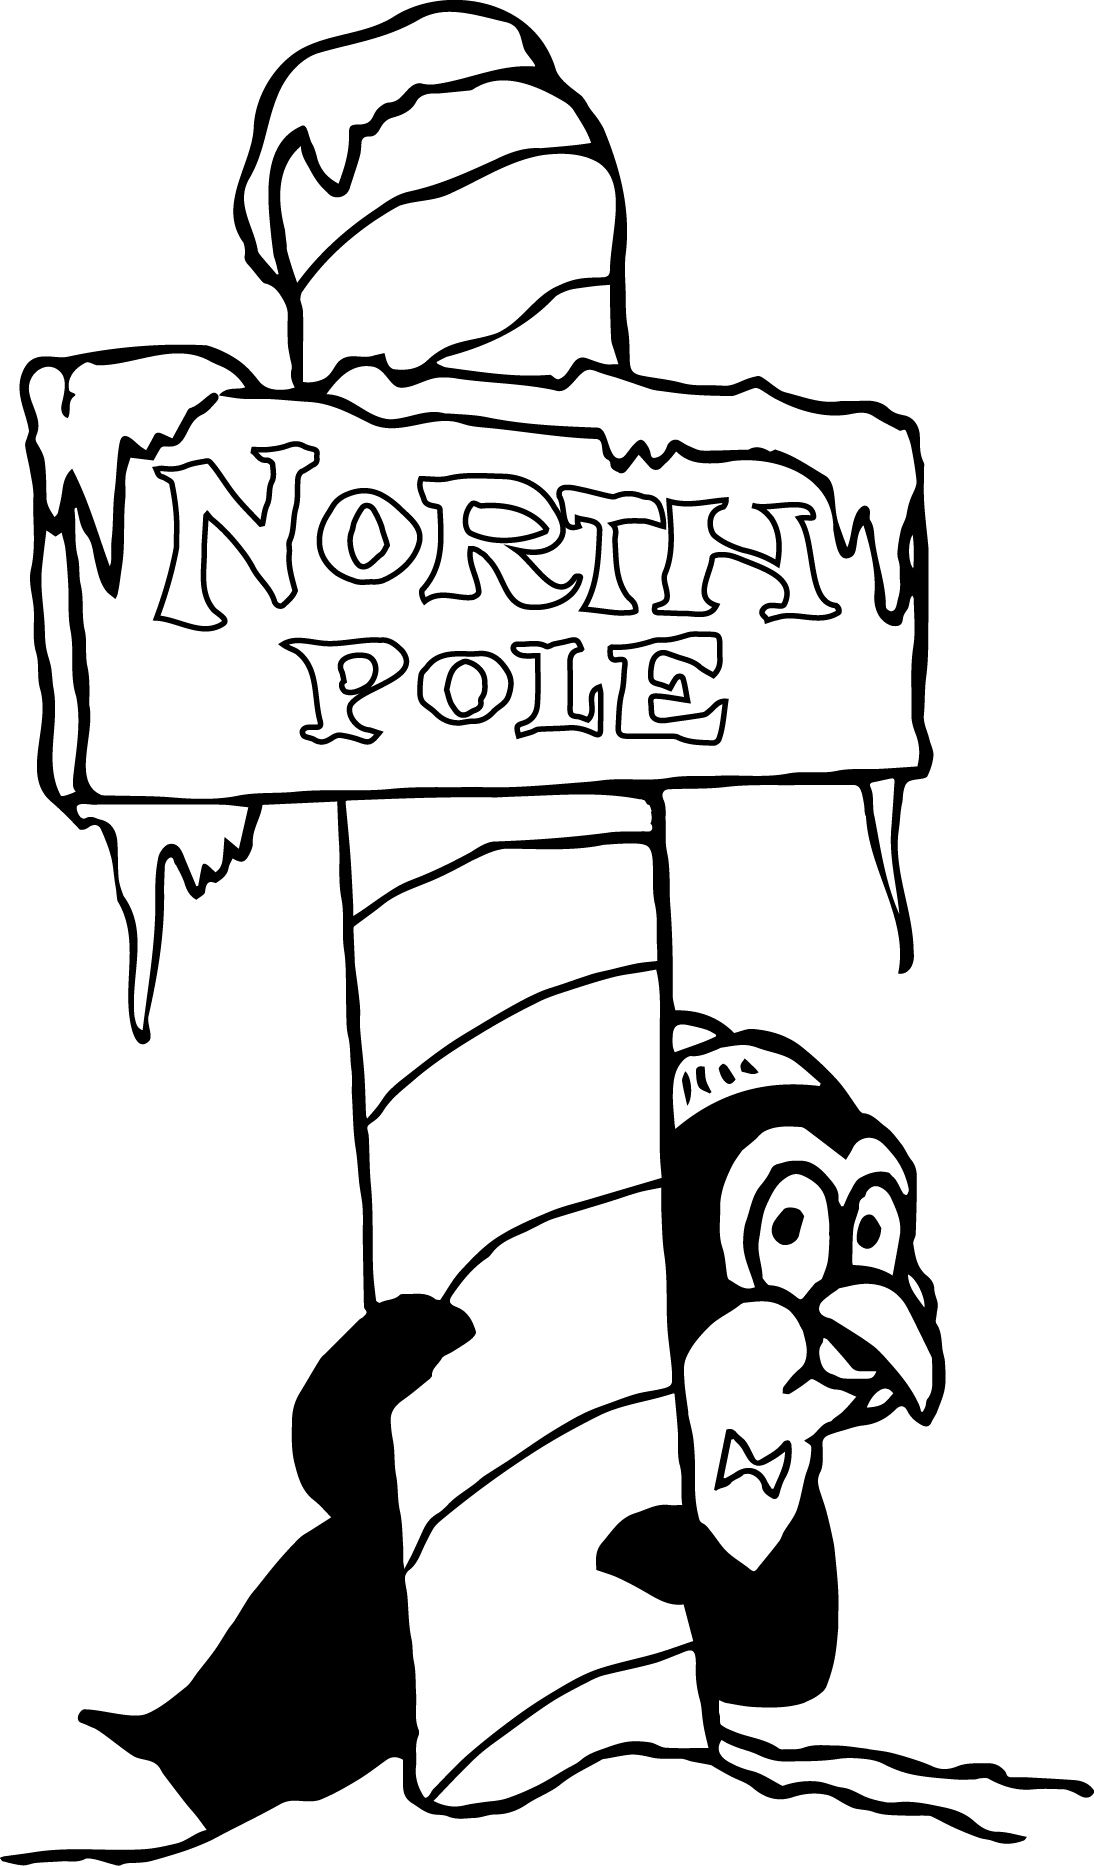 cool north pole coloring pages